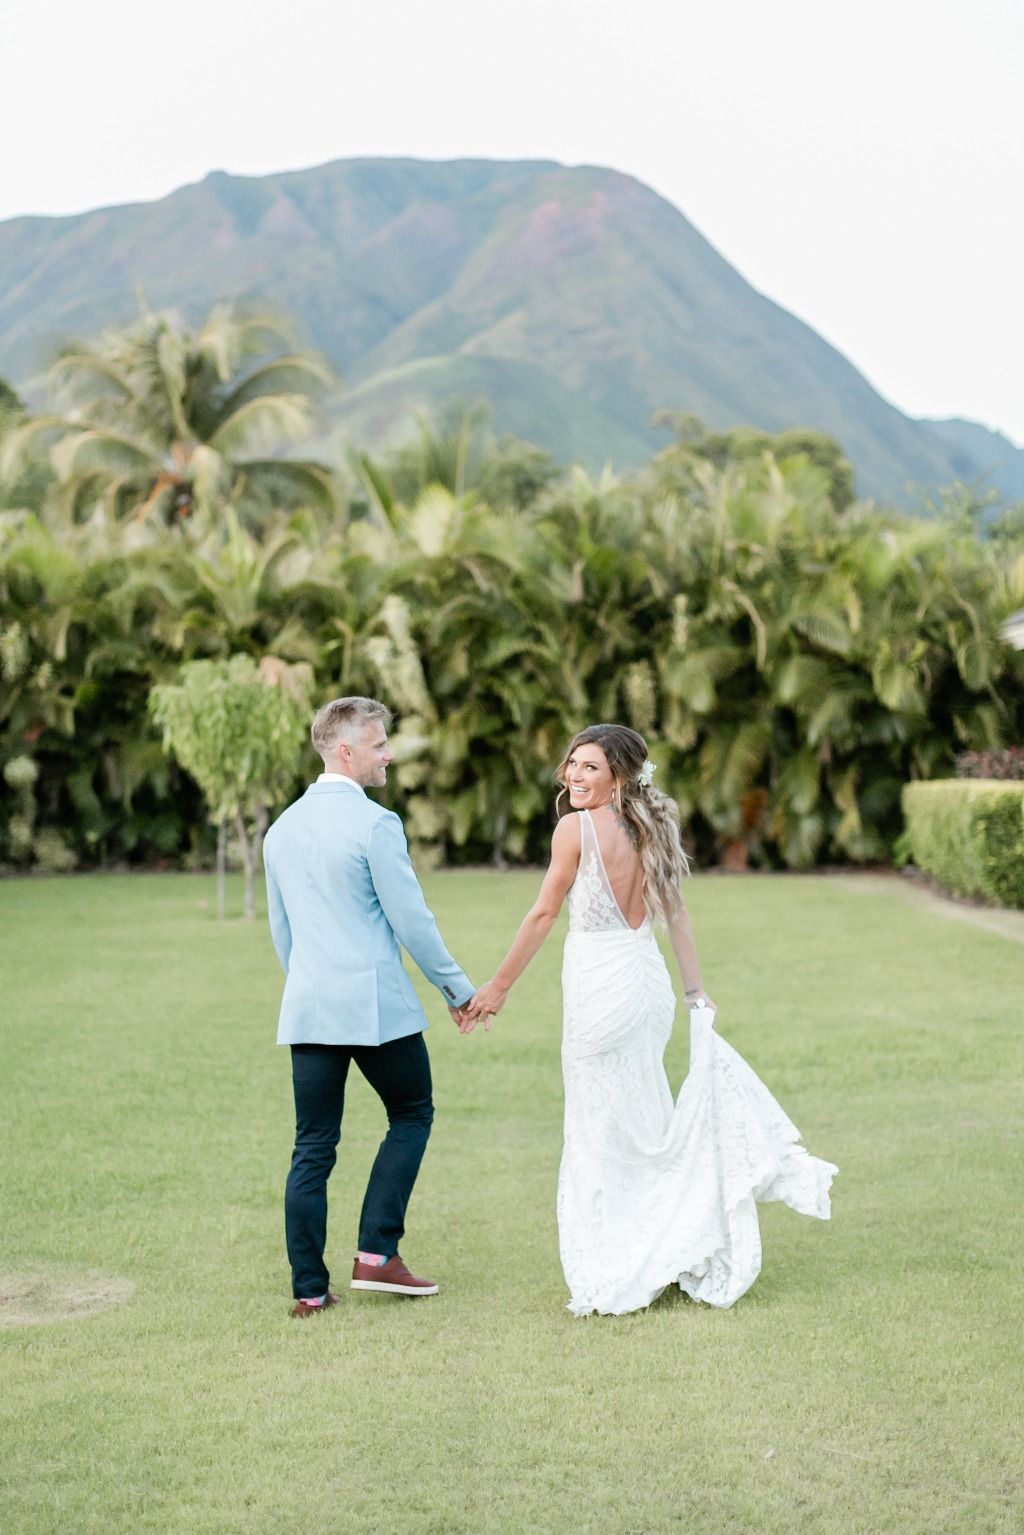 Photo by Caitlin Cathey Photography | Maui Wedding Photographer | Maui Weddings | Luxury Hawaiian Wedding | Bride and Groom First Look